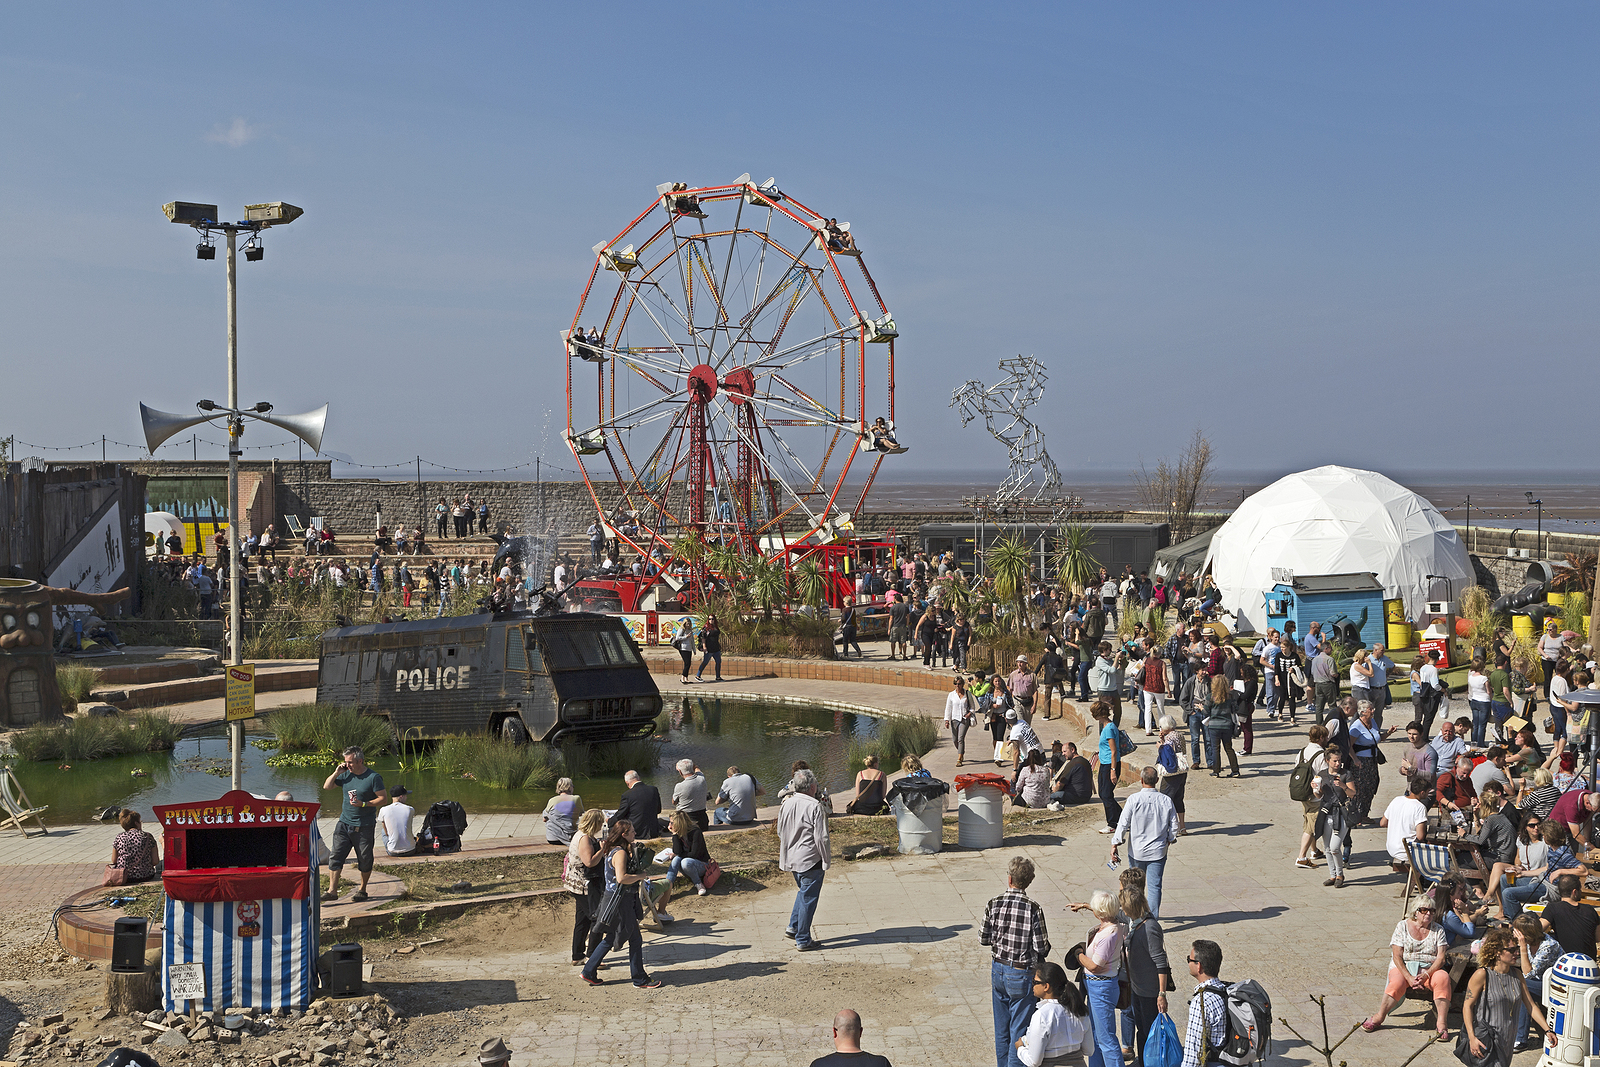 Dismaland — The Most Large-Scale Art Project by Banksy